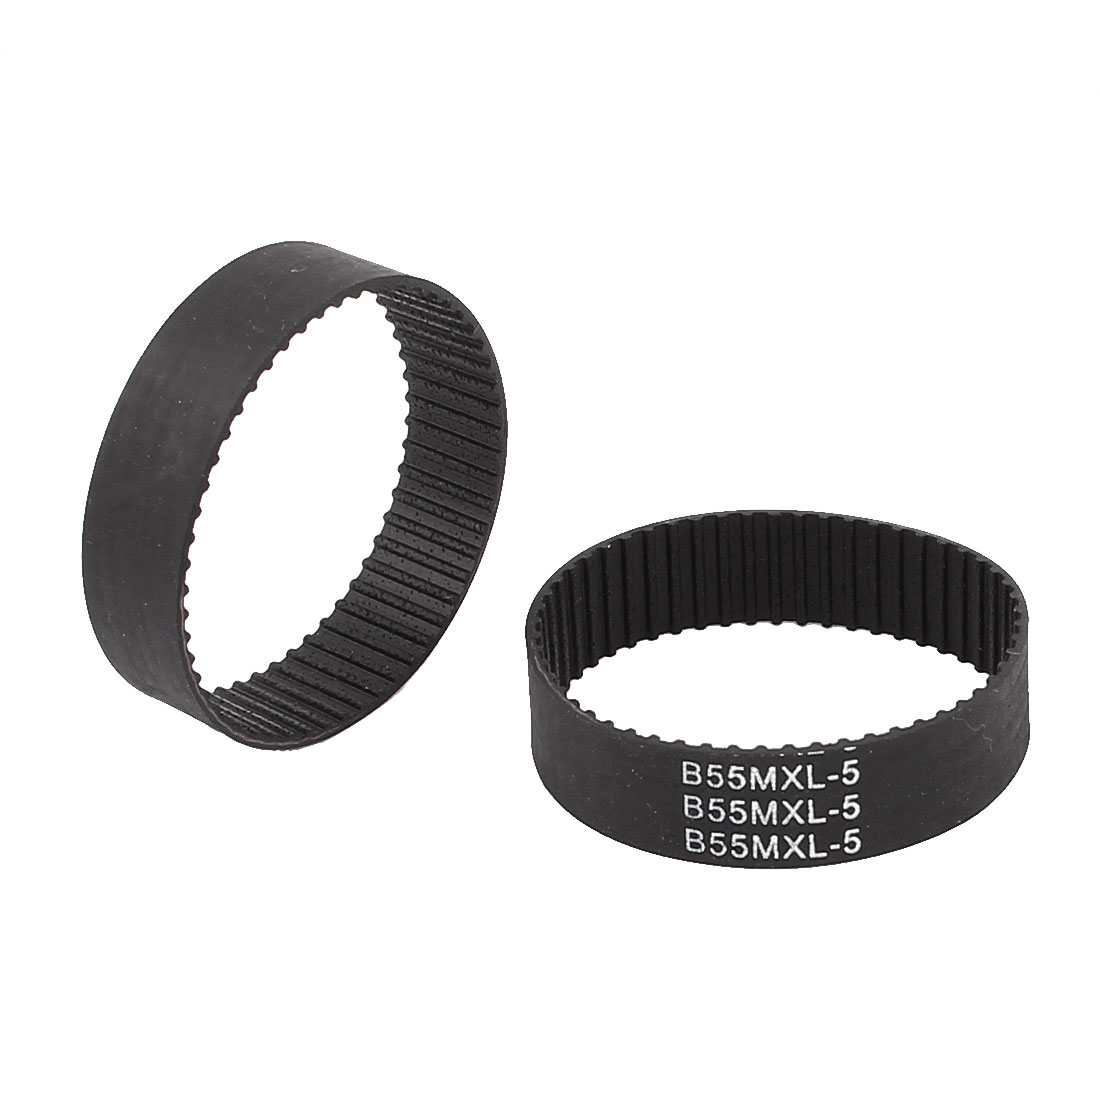 2Pcs 10mm Width 55 Teeth 1mm Pitch Rubber PU Synchronous Timing Belt Black